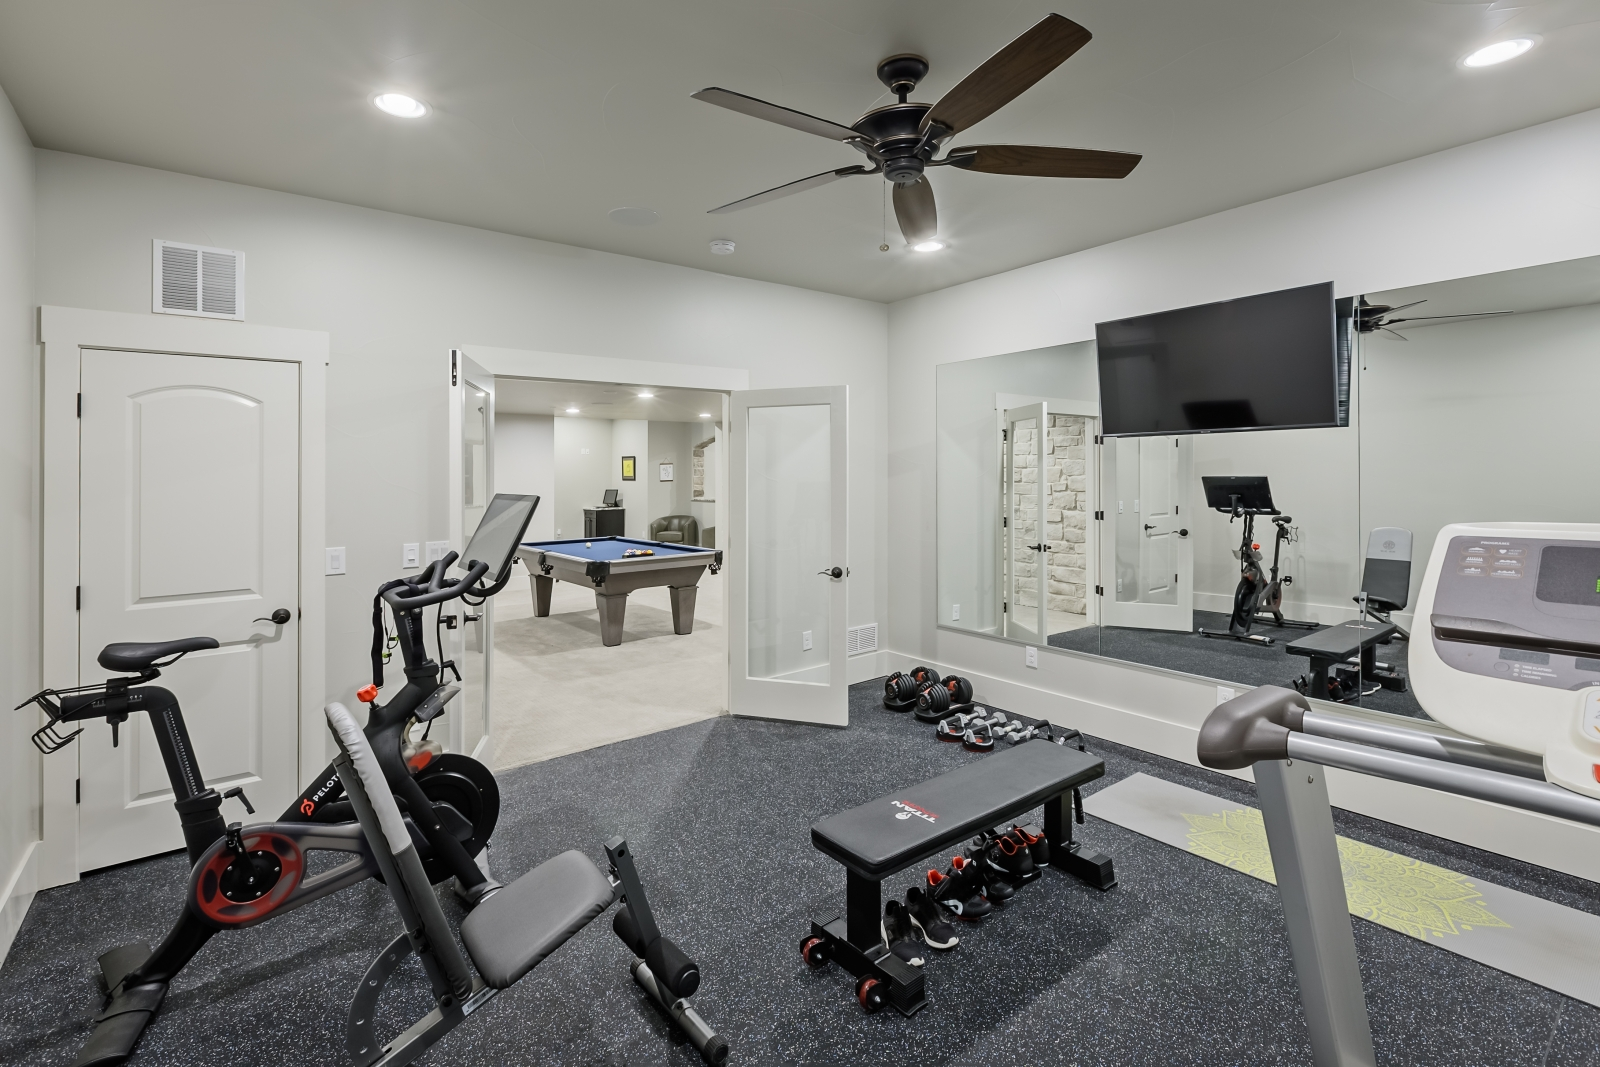 5343-Sedona-fitness-room